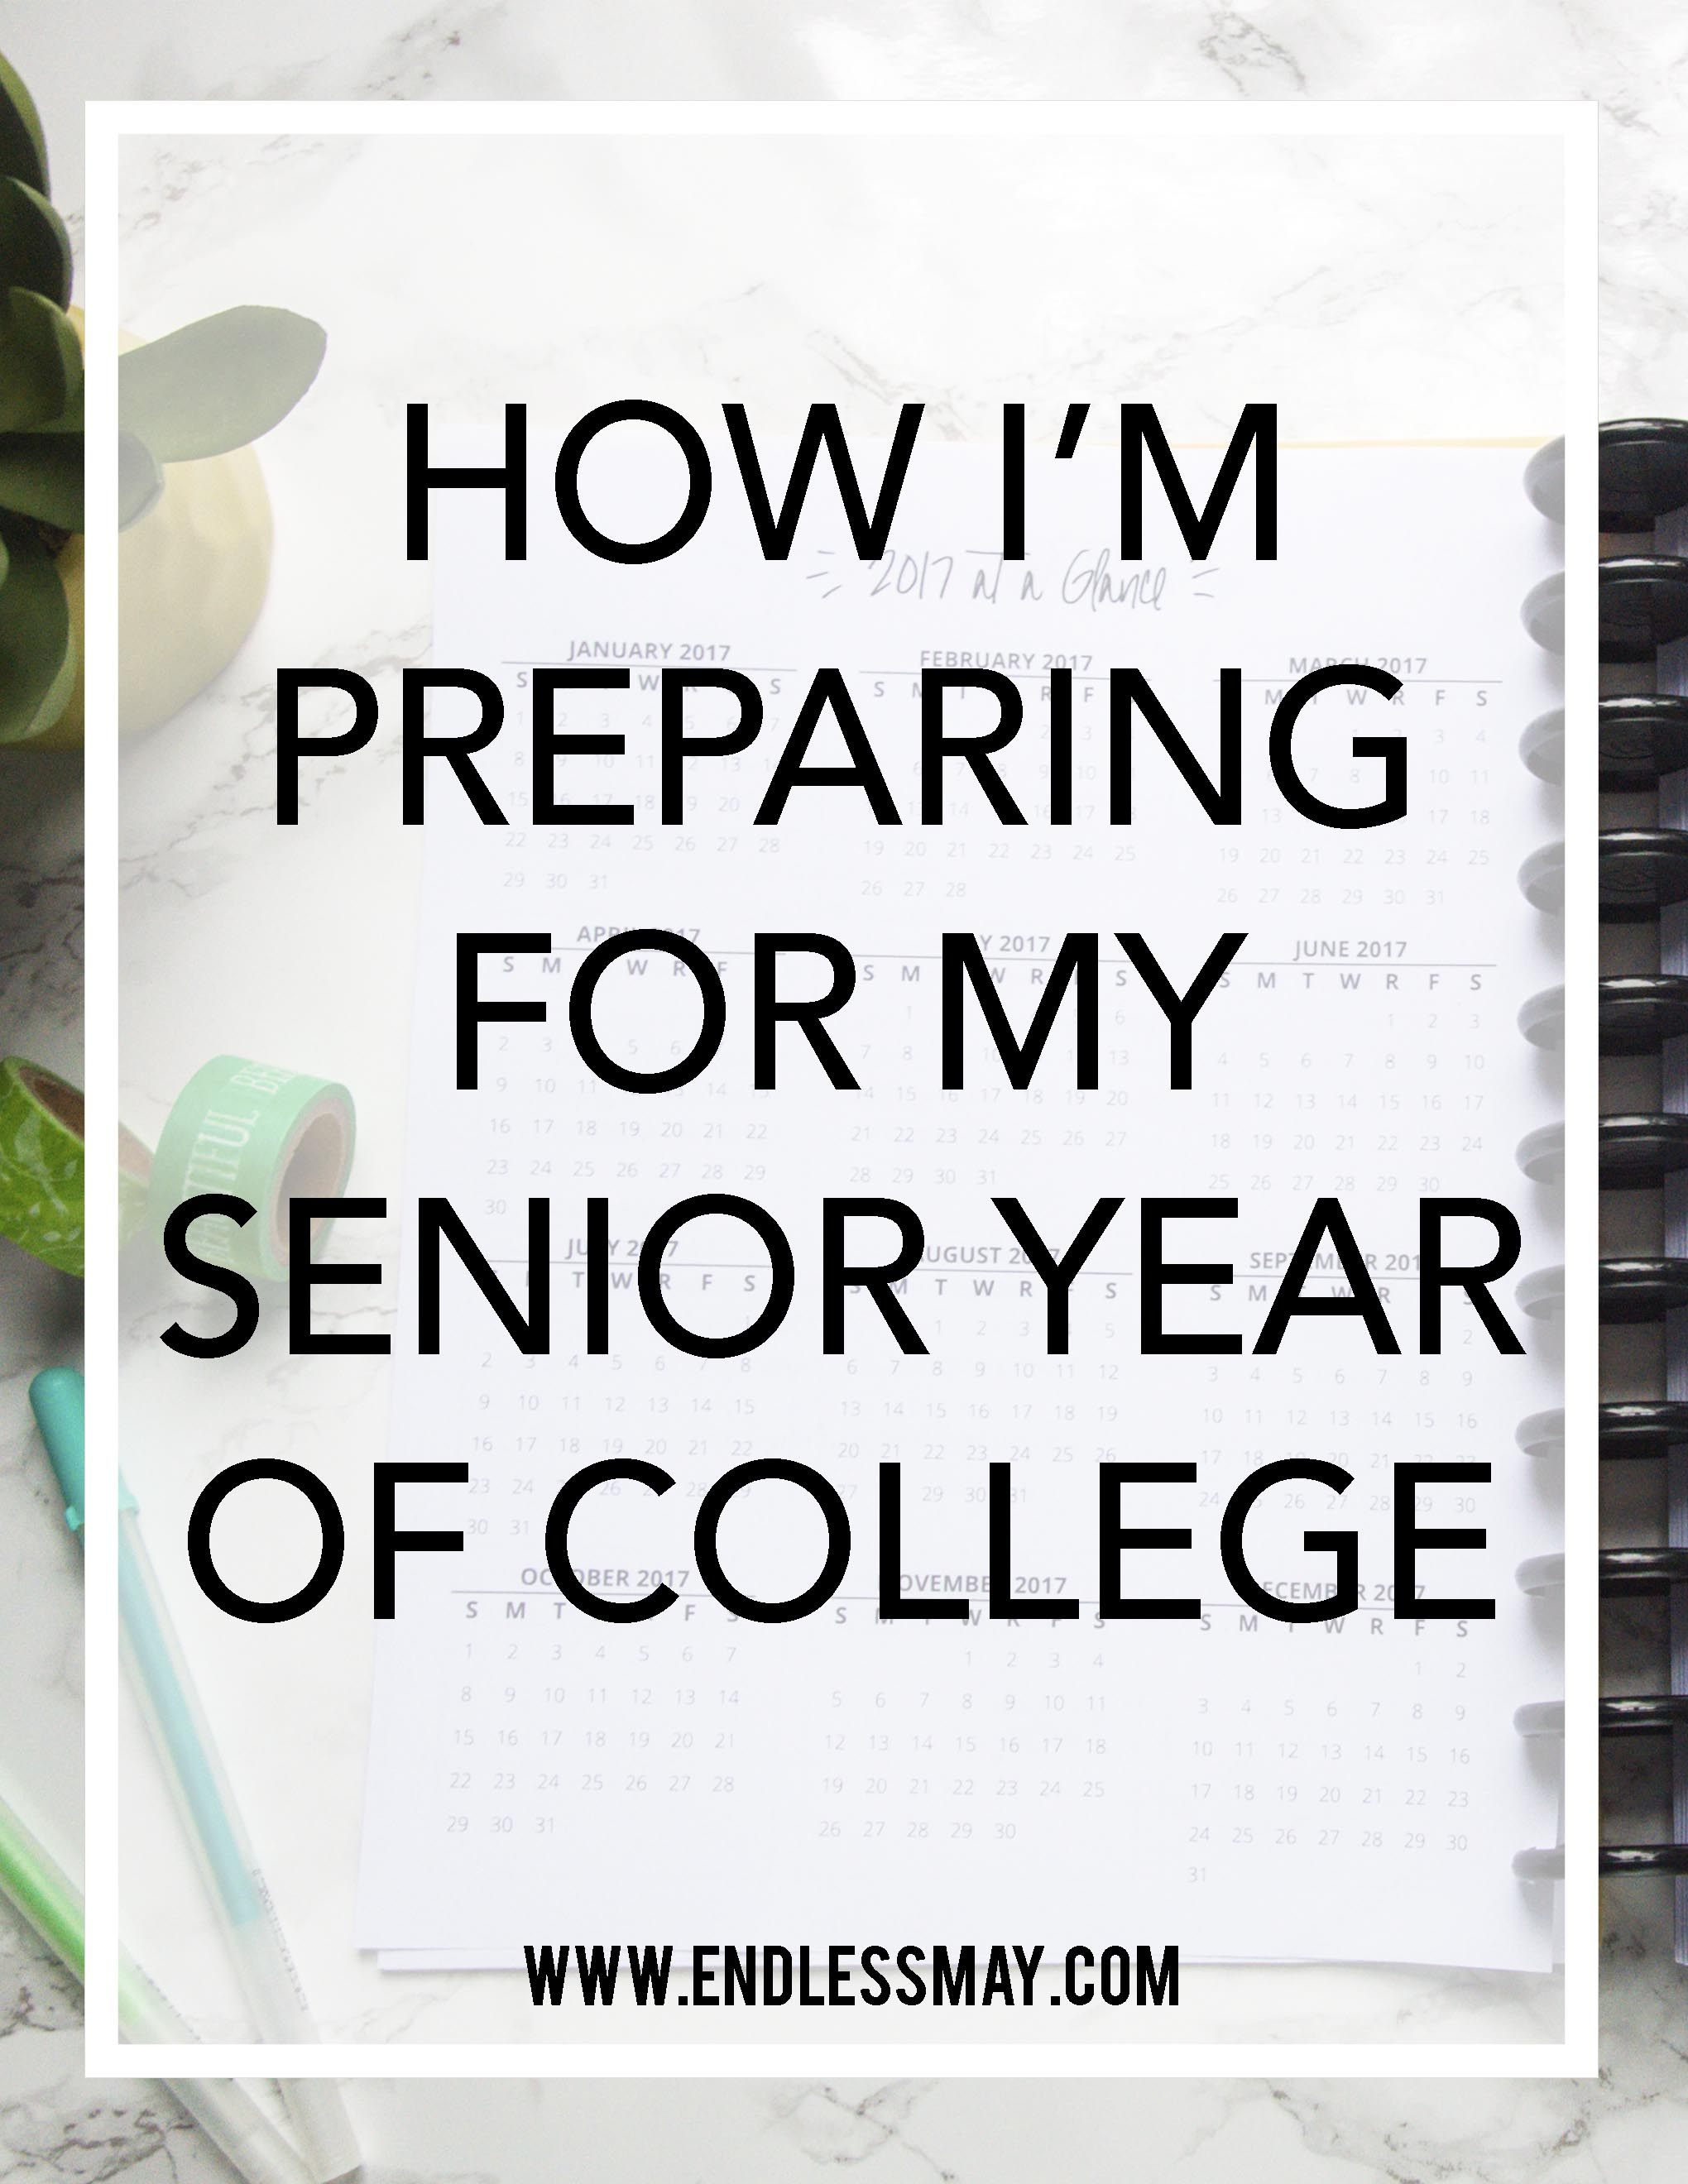 HOW I'M PREPARING FOR MY SENIOR YEAR OF COLLEGE | Endless May